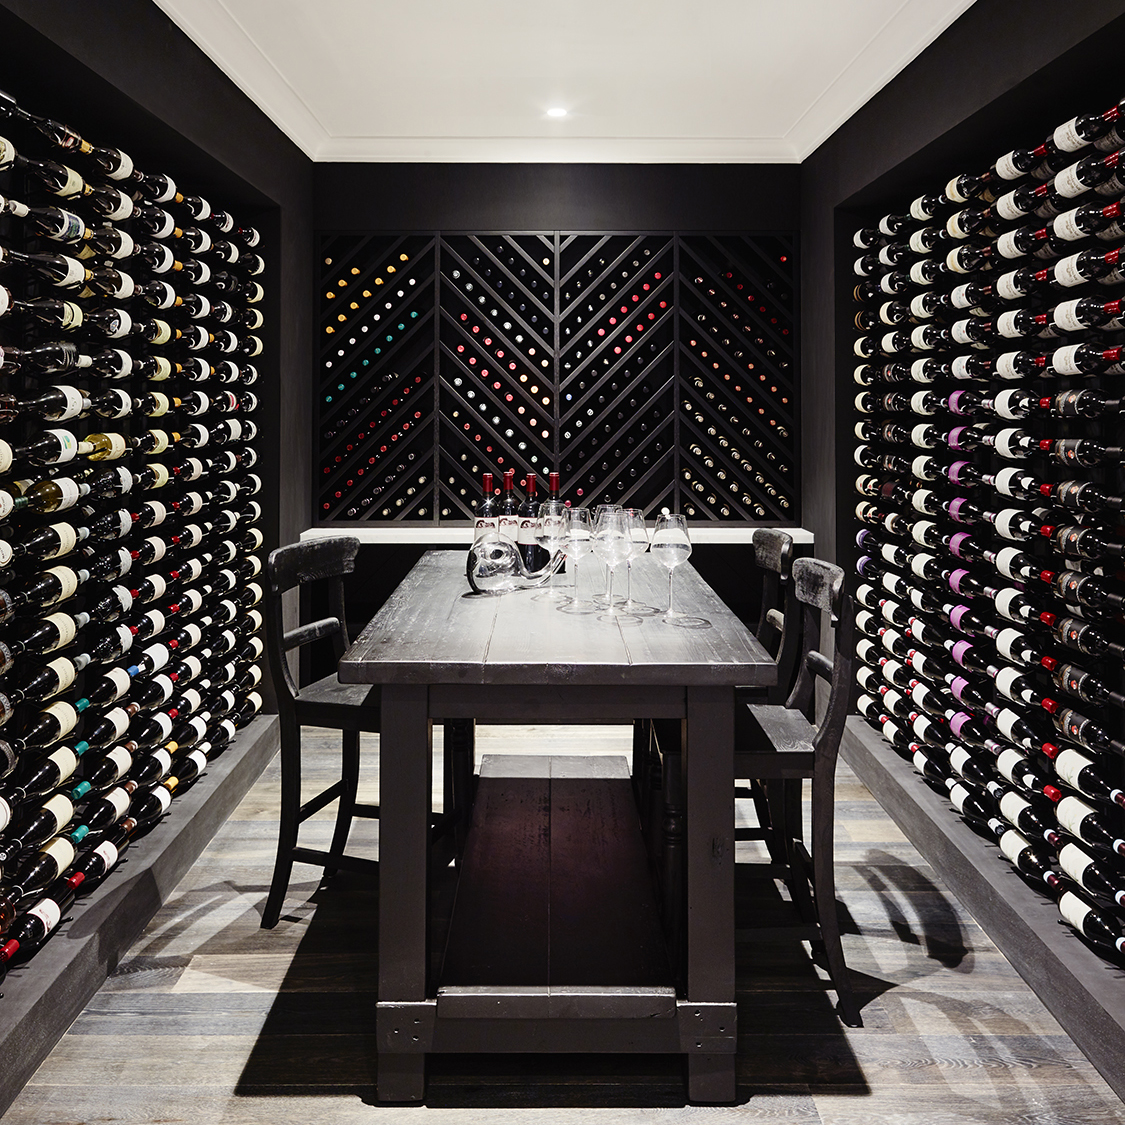 Black wine cellar with built-in wooden cabinets - Designed by Greg Natale - Image by Instagram